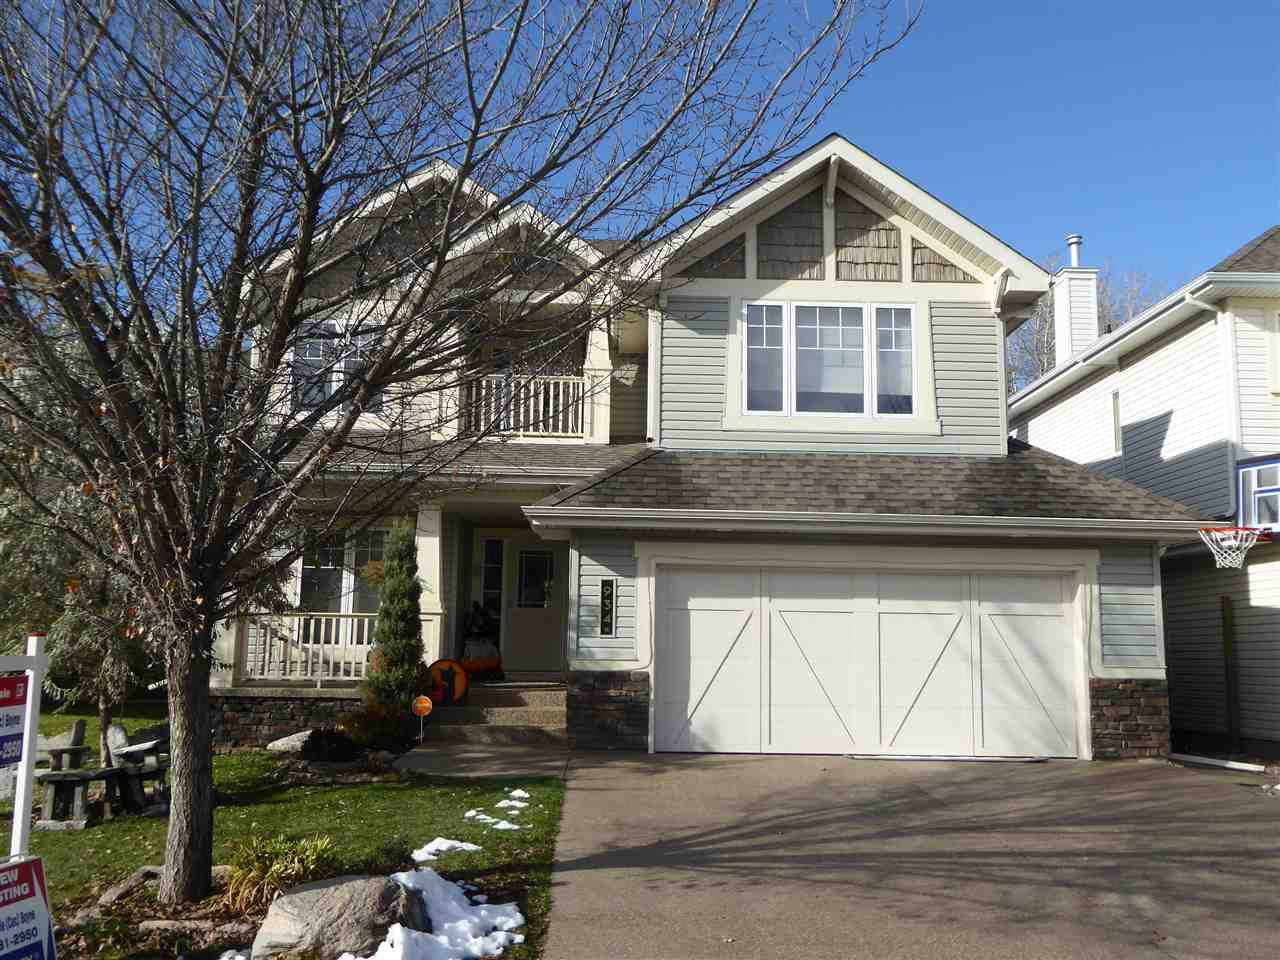 Main Photo: 934 HOPE WY NW in Edmonton: Zone 58 House for sale : MLS®# E4041259